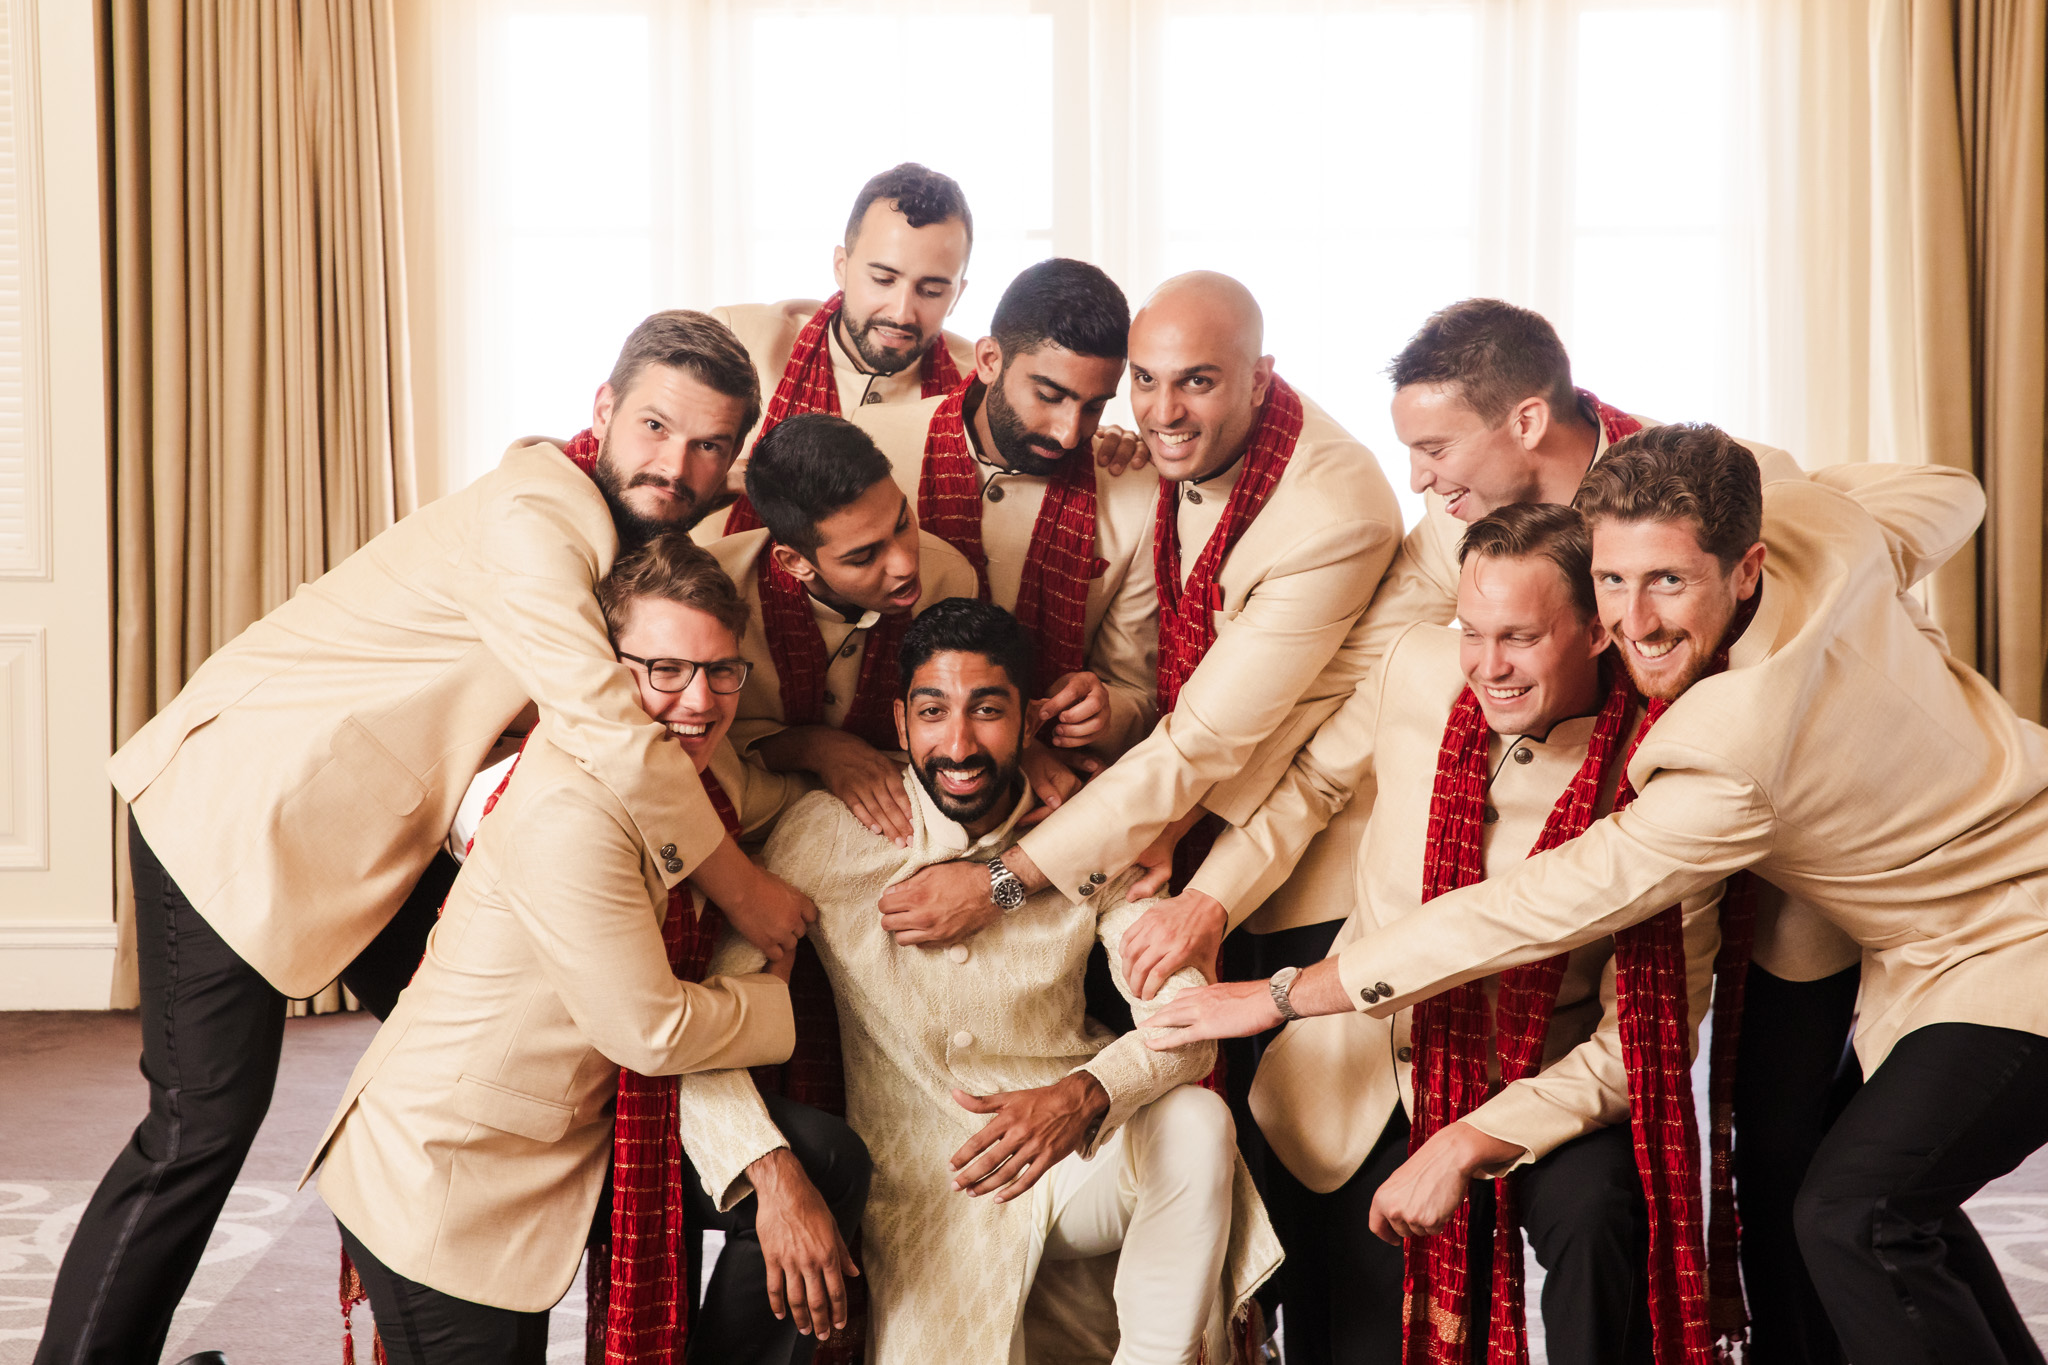 007 ritz carlton laguna niguel indian groomsmen wedding photography